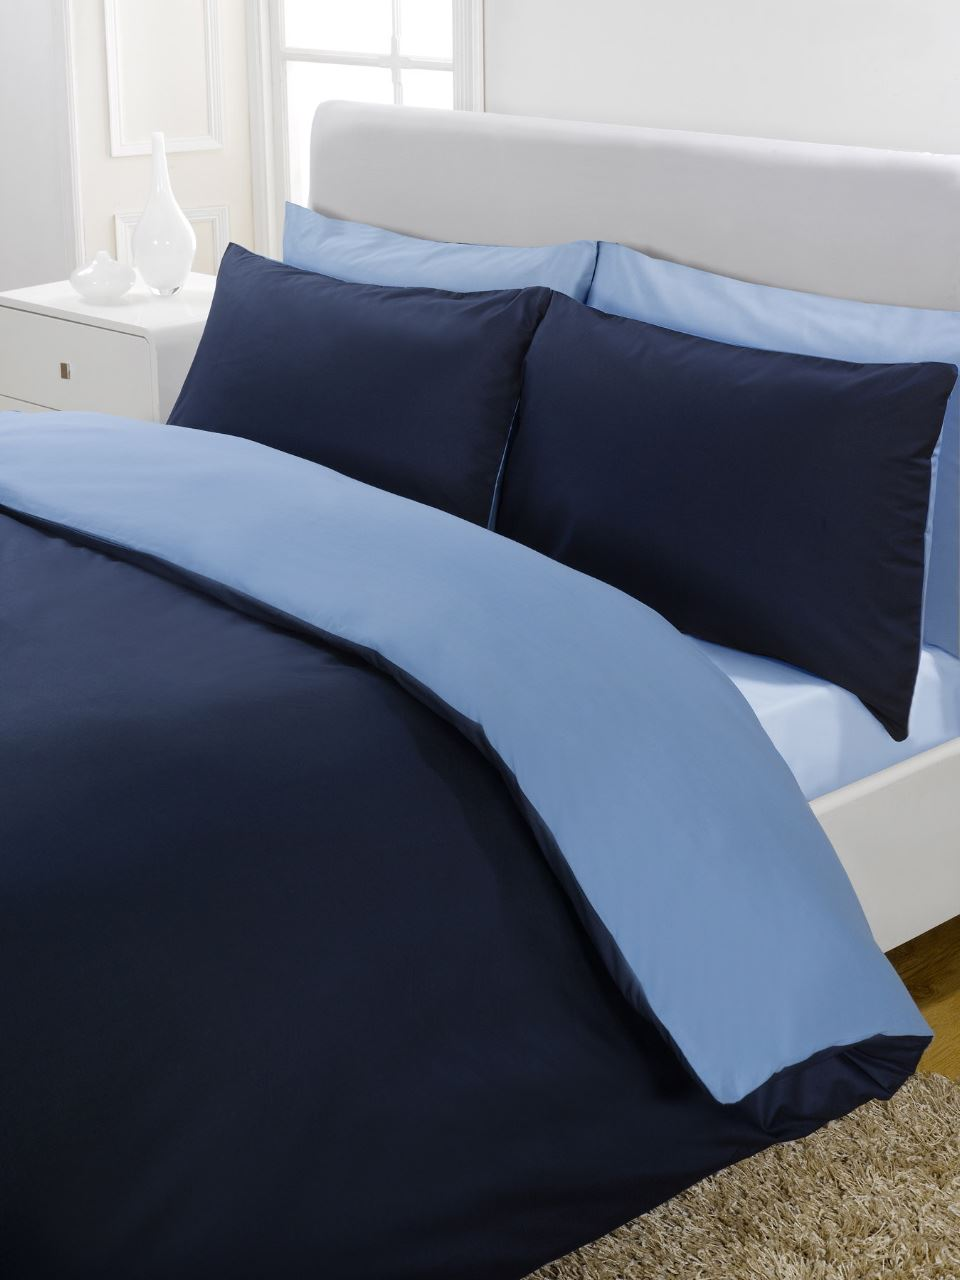 housse de couette de luxe percale r versible bleu marine. Black Bedroom Furniture Sets. Home Design Ideas